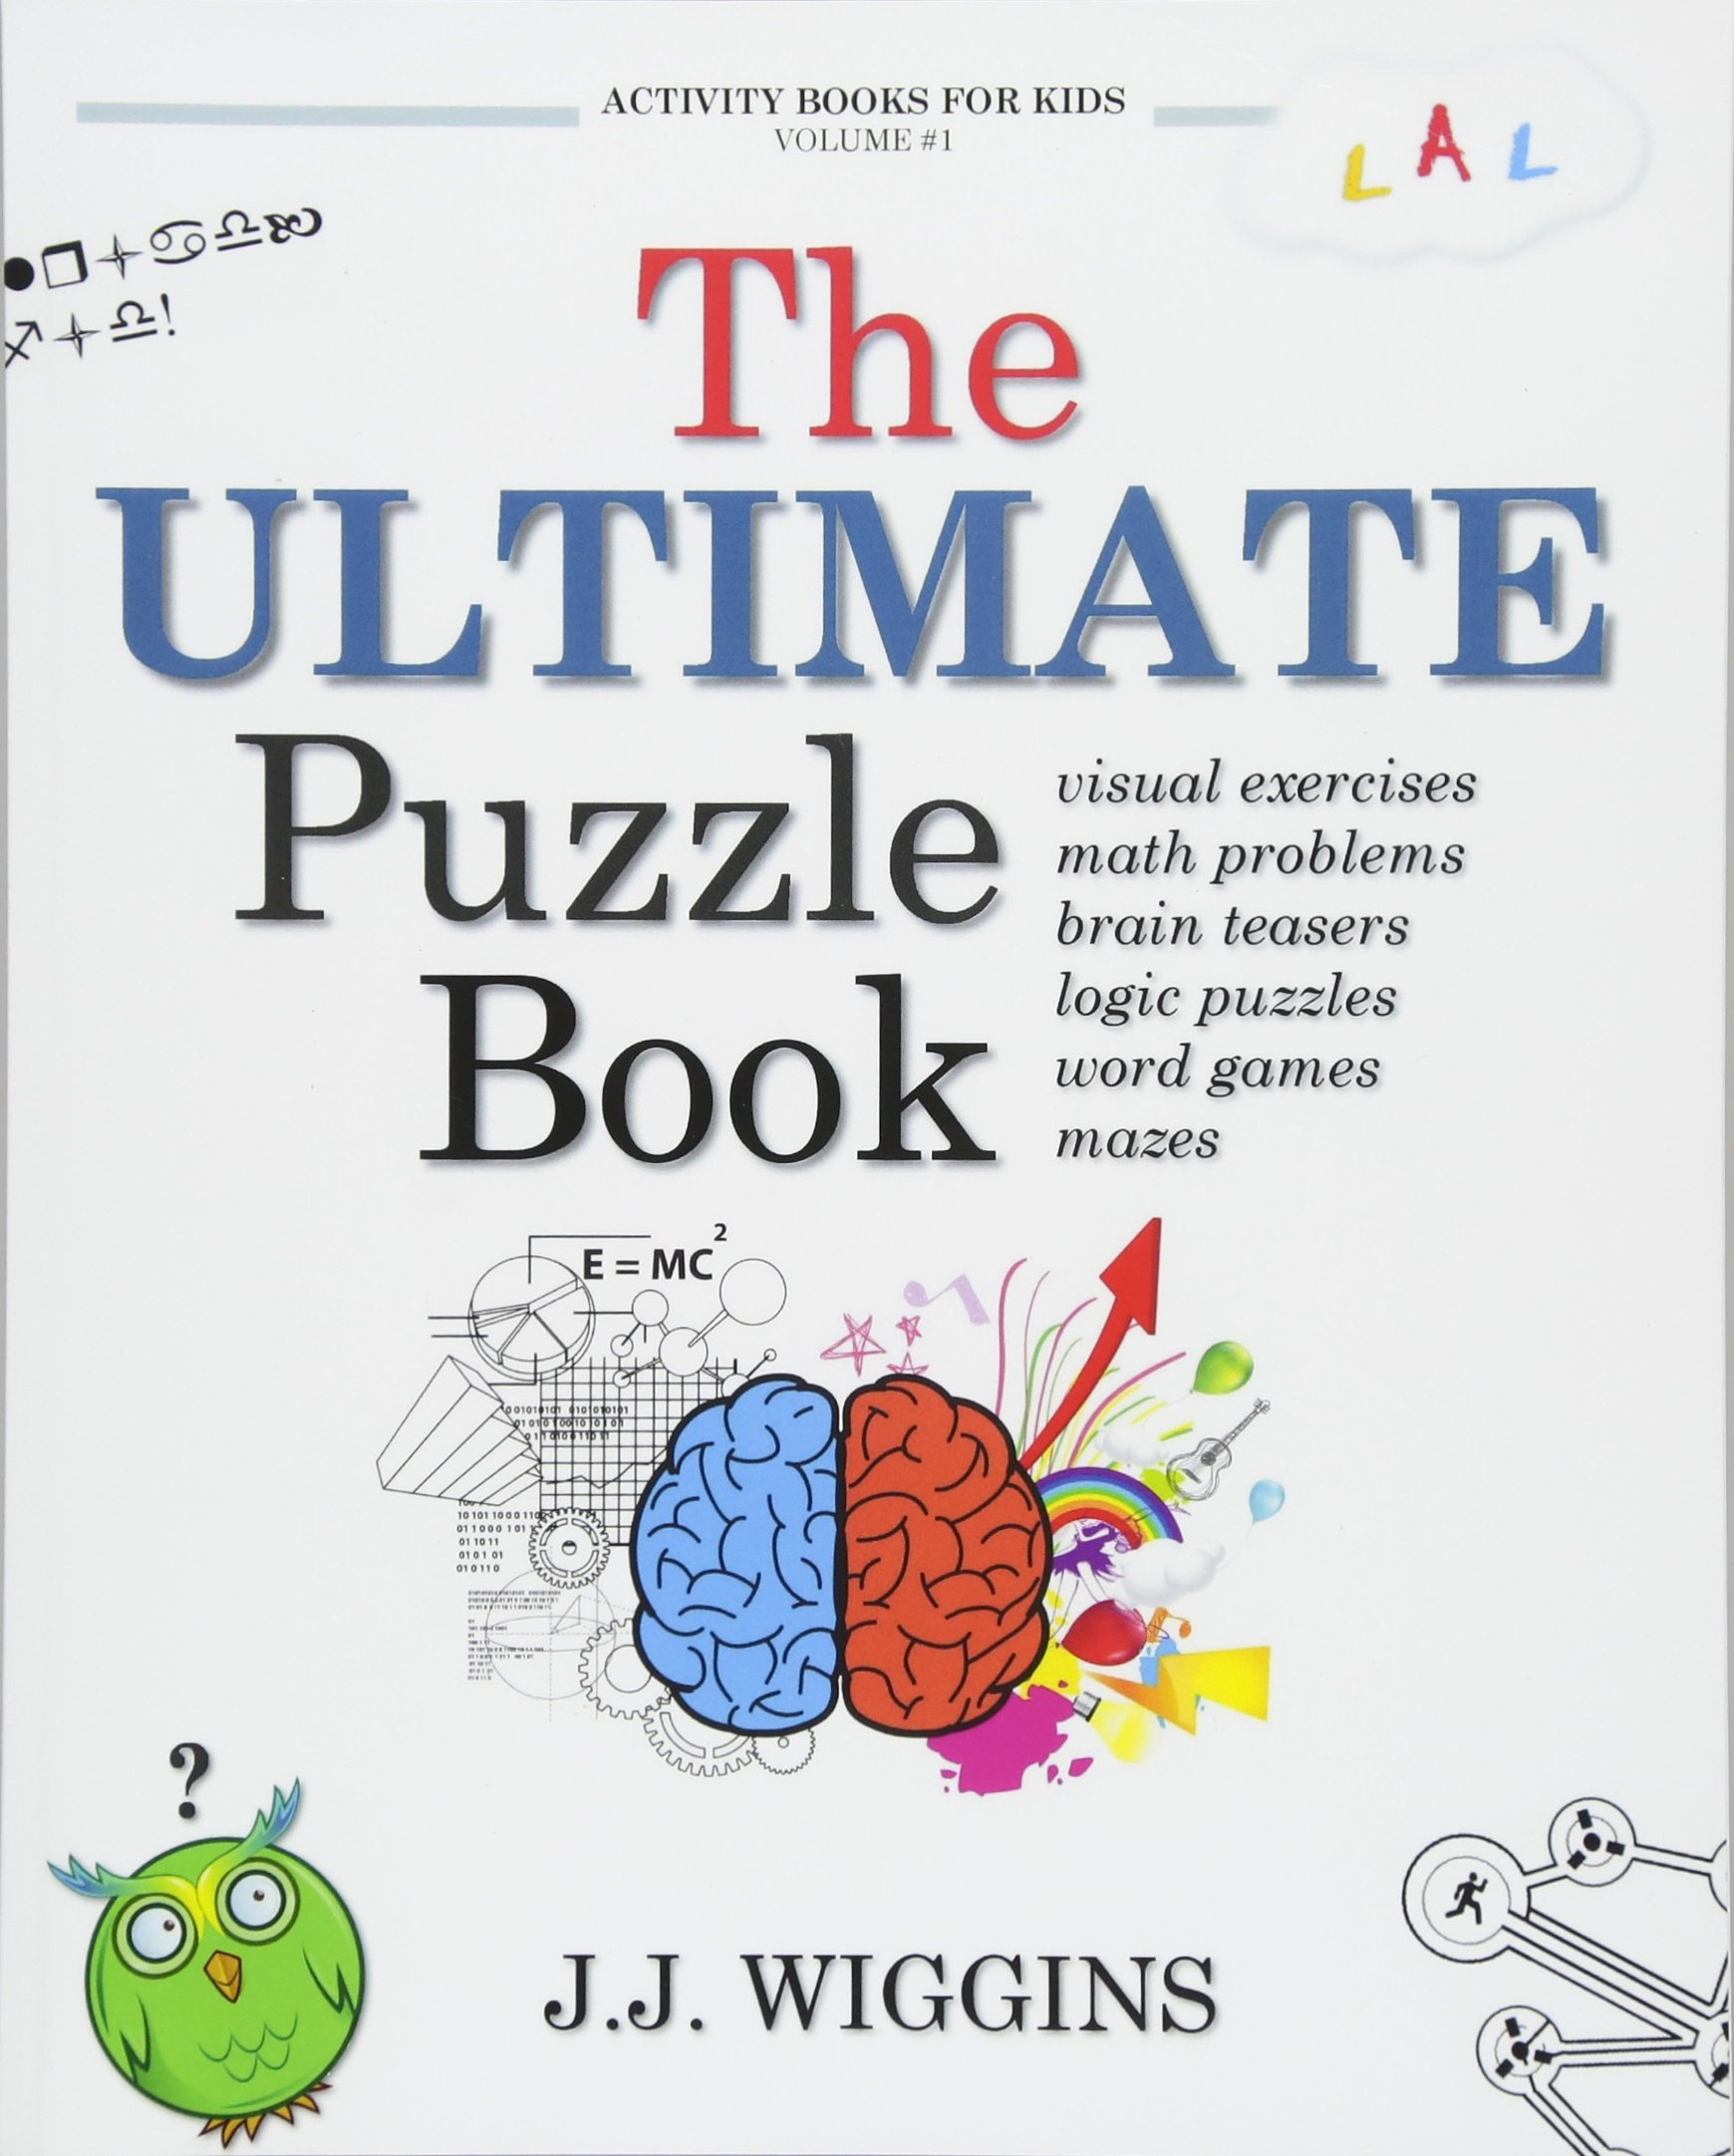 Amazon.com: The Ultimate Puzzle Book: Mazes, Brain Teasers, Logic Puzzles,  Math Problems, Visual Exercises, Word Games, and More! (Activity Books For  Kids) ...